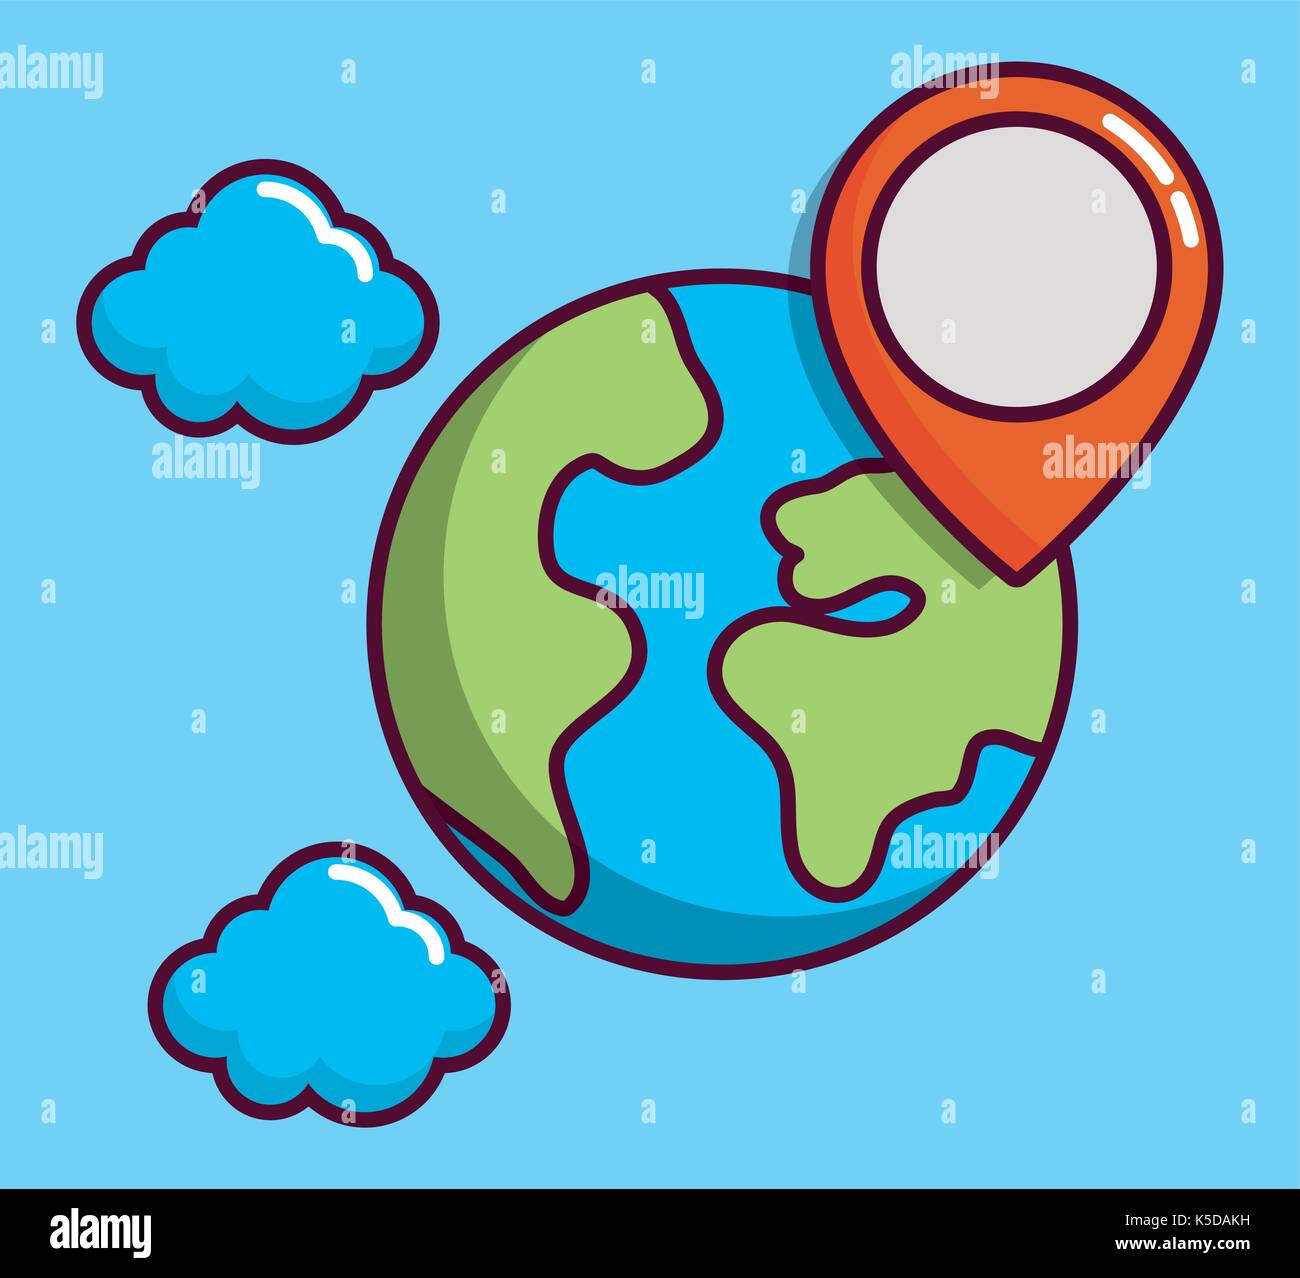 navigation and location design - Stock Image